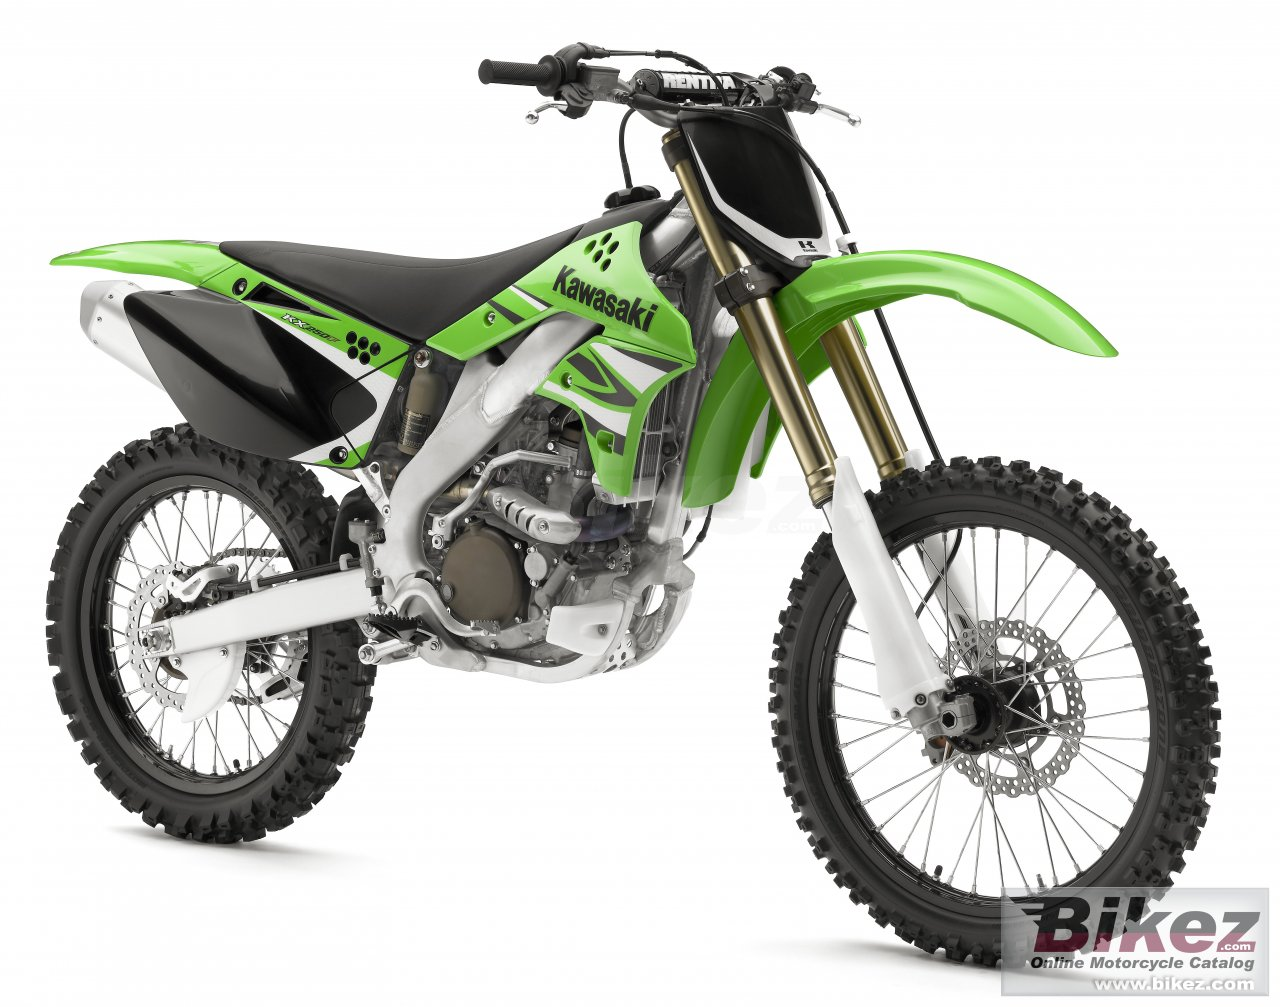 Big Kawasaki kx250f picture and wallpaper from Bikez.com